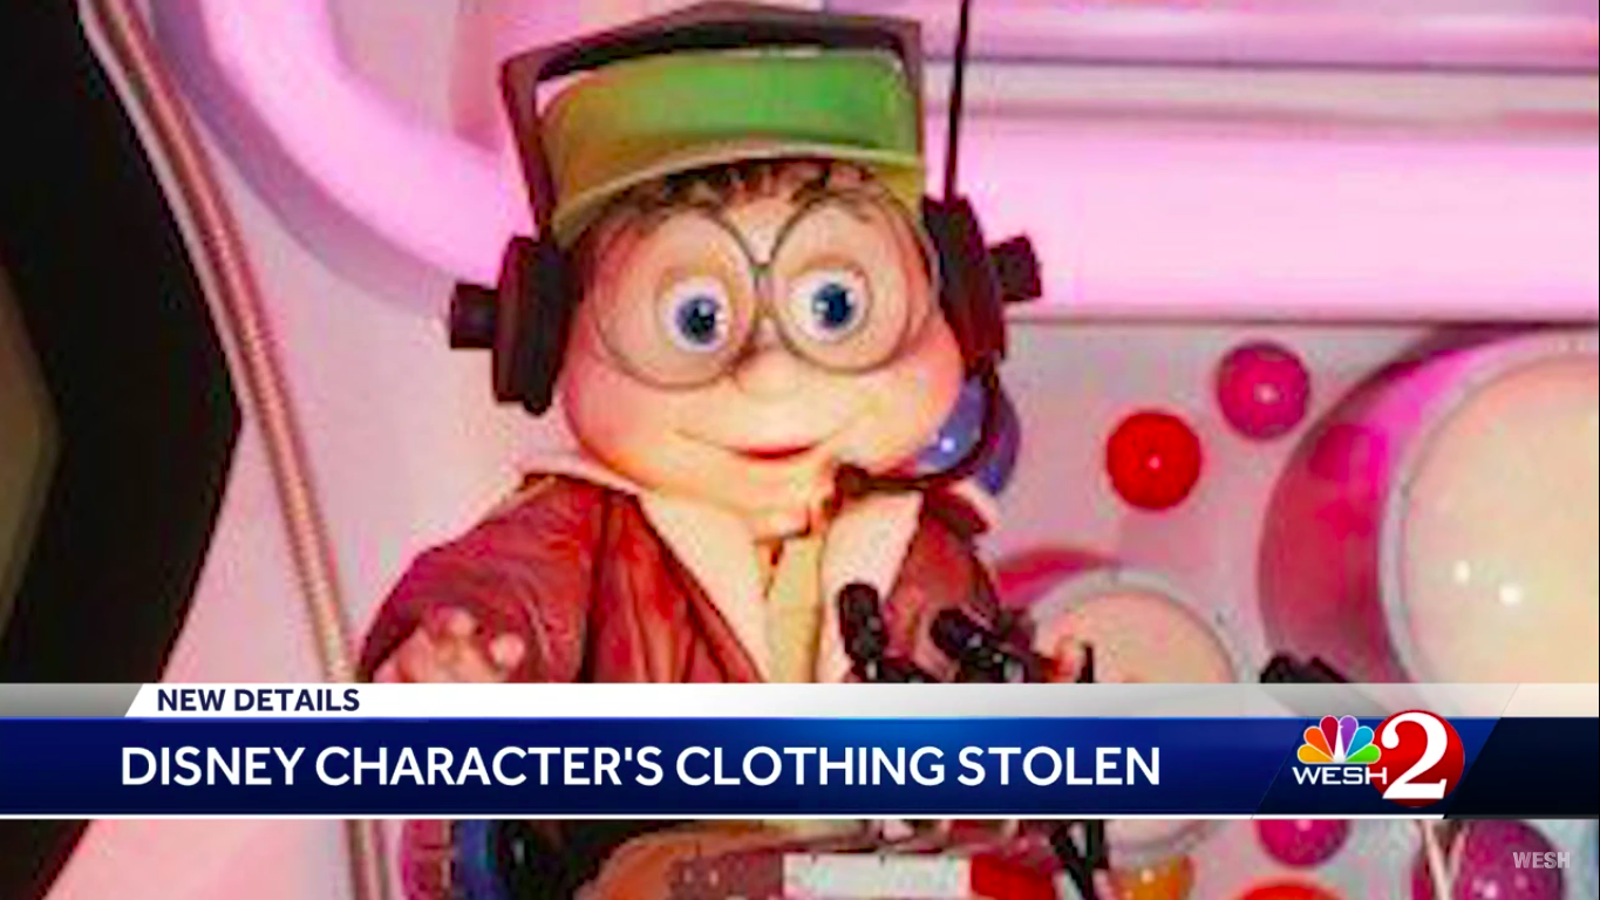 QnA VBage Disney World Fans Demand Justice for Animatronic Robot Robbed of His Hands and Clothes